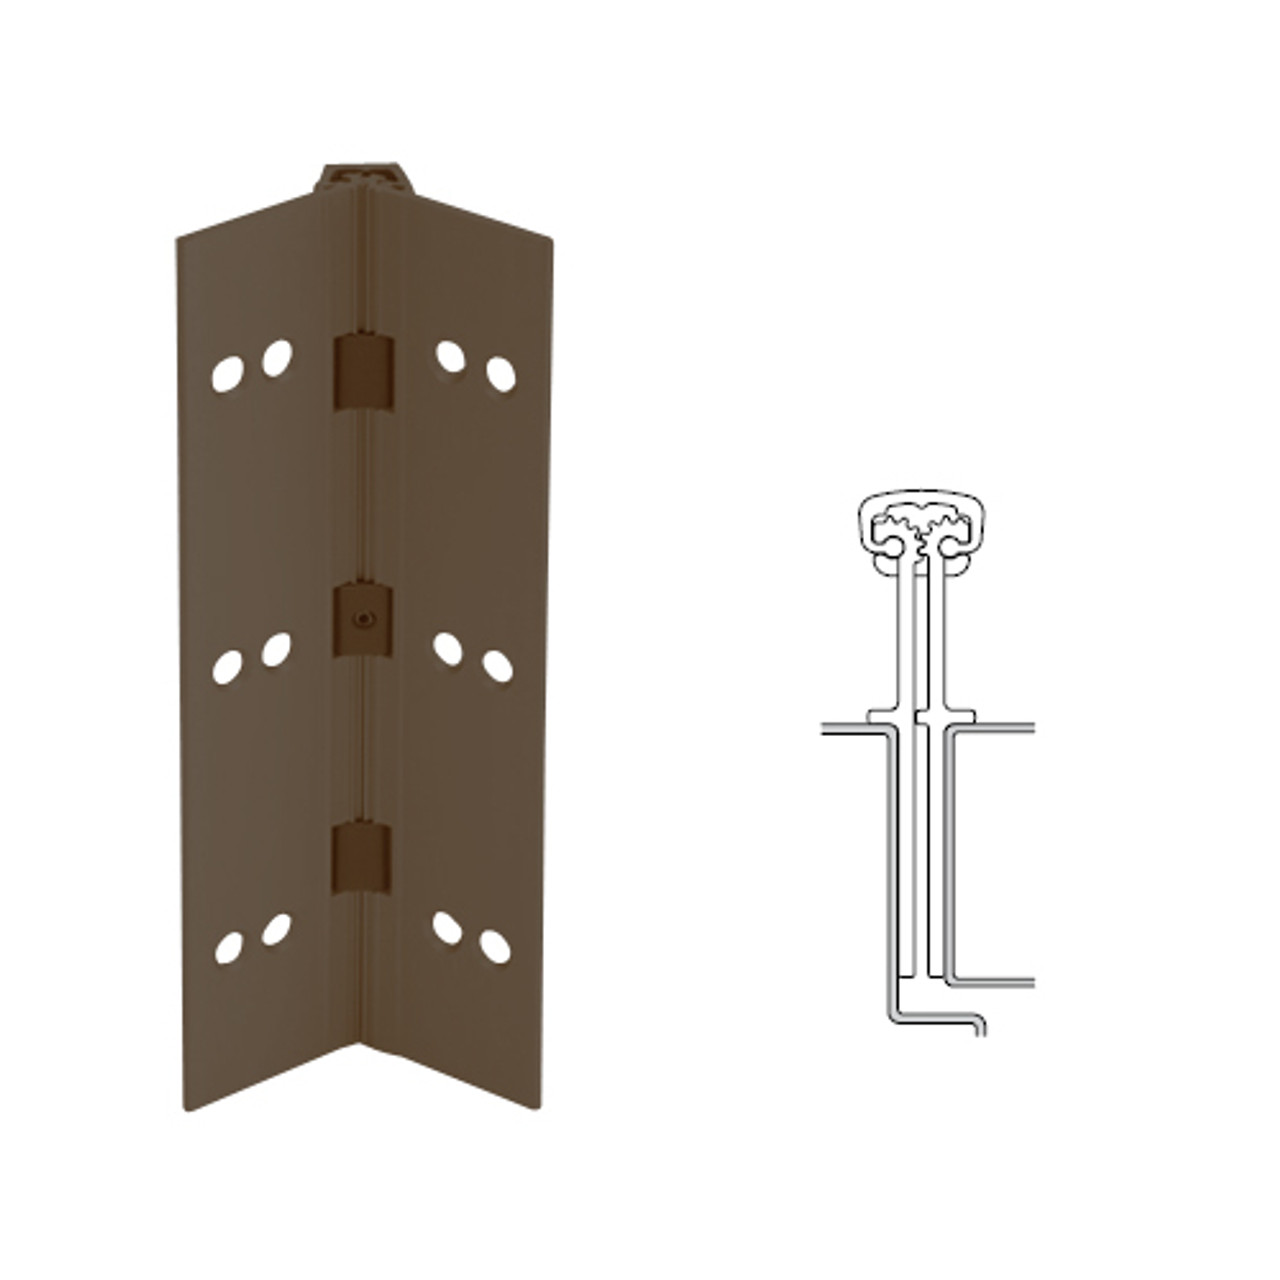 040XY-313AN-95-TF IVES Full Mortise Continuous Geared Hinges with Thread Forming Screws in Dark Bronze Anodized